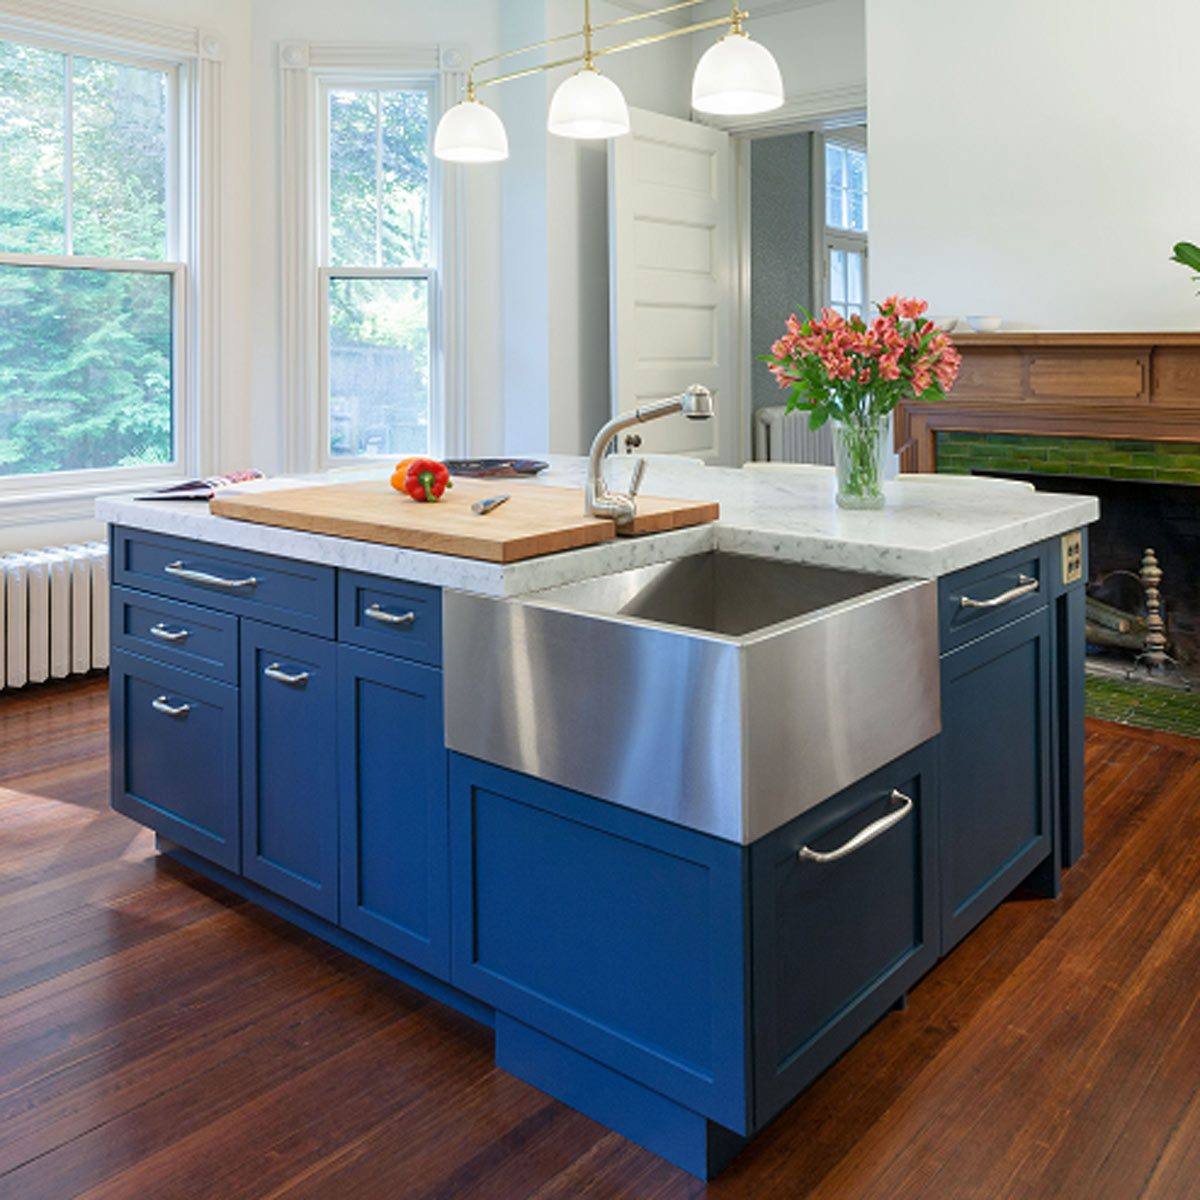 How To Paint Kitchen Cabinets Without Streaks 10 Painting Myths Busted The Family Handyman